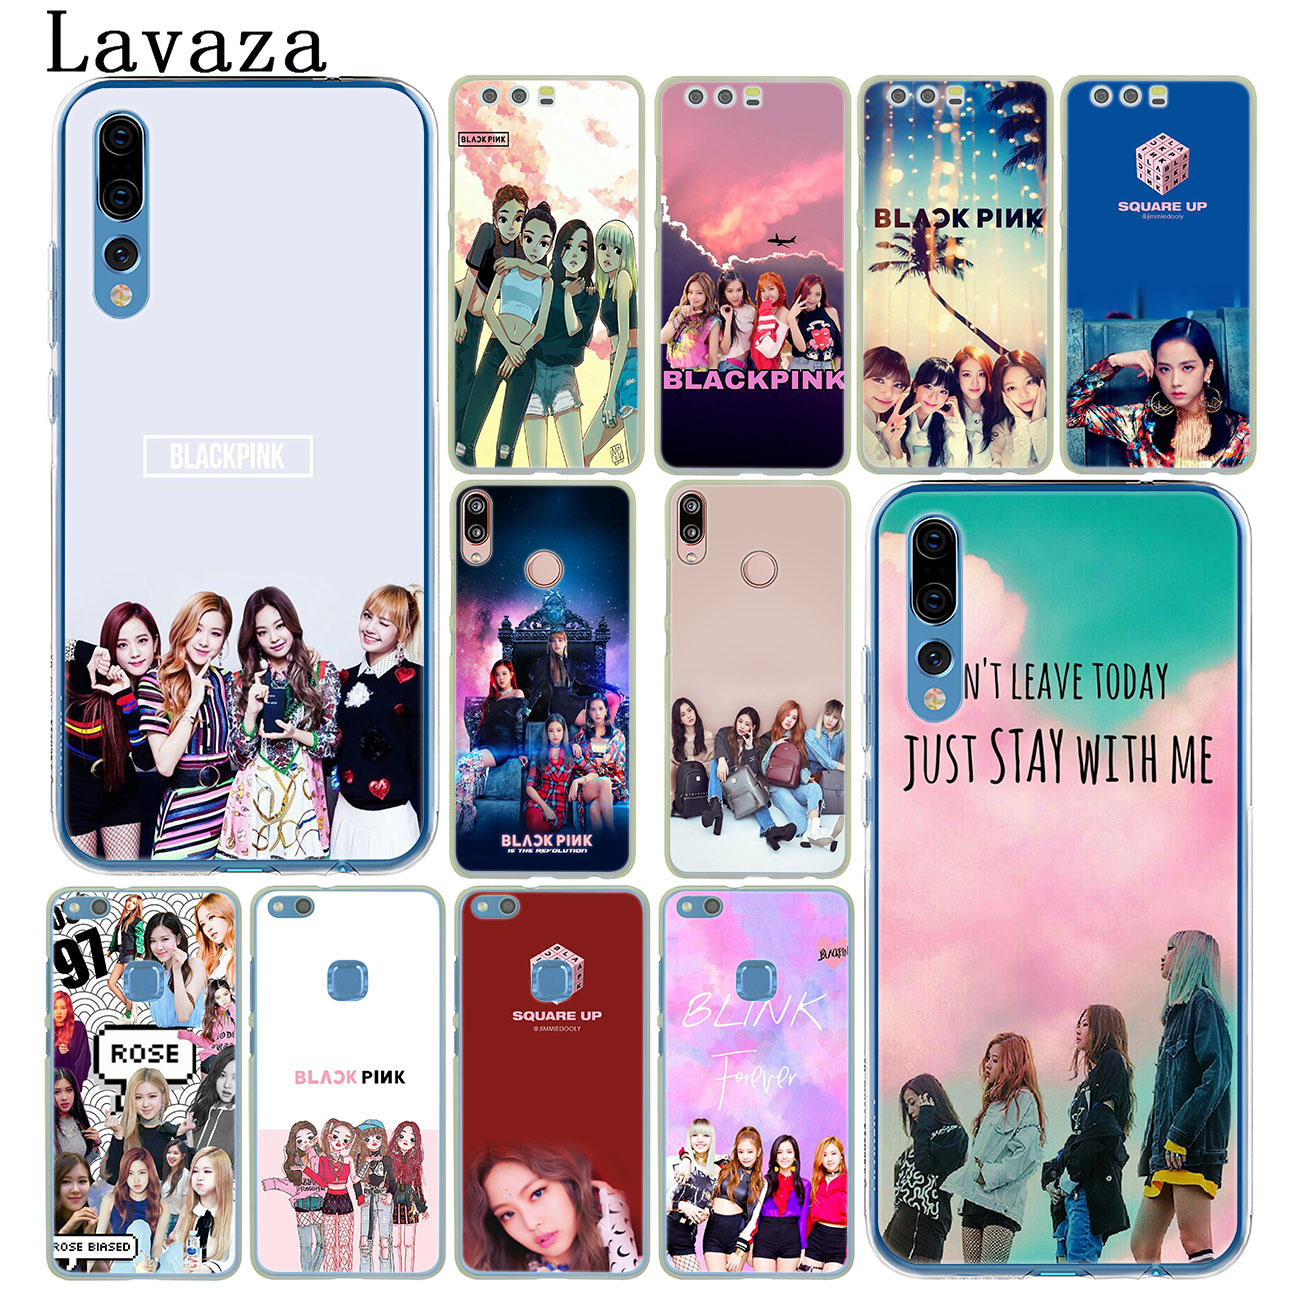 US $1 99 22% OFF|Lavaza Kpop BLACKPINK BLACK PINK Phone Case for Huawei Y7  Y6 Prime Y5 Y9 2018 2017 Honor play 10 8 8C 8X 9 Lite 7C 7X 7A Pro-in